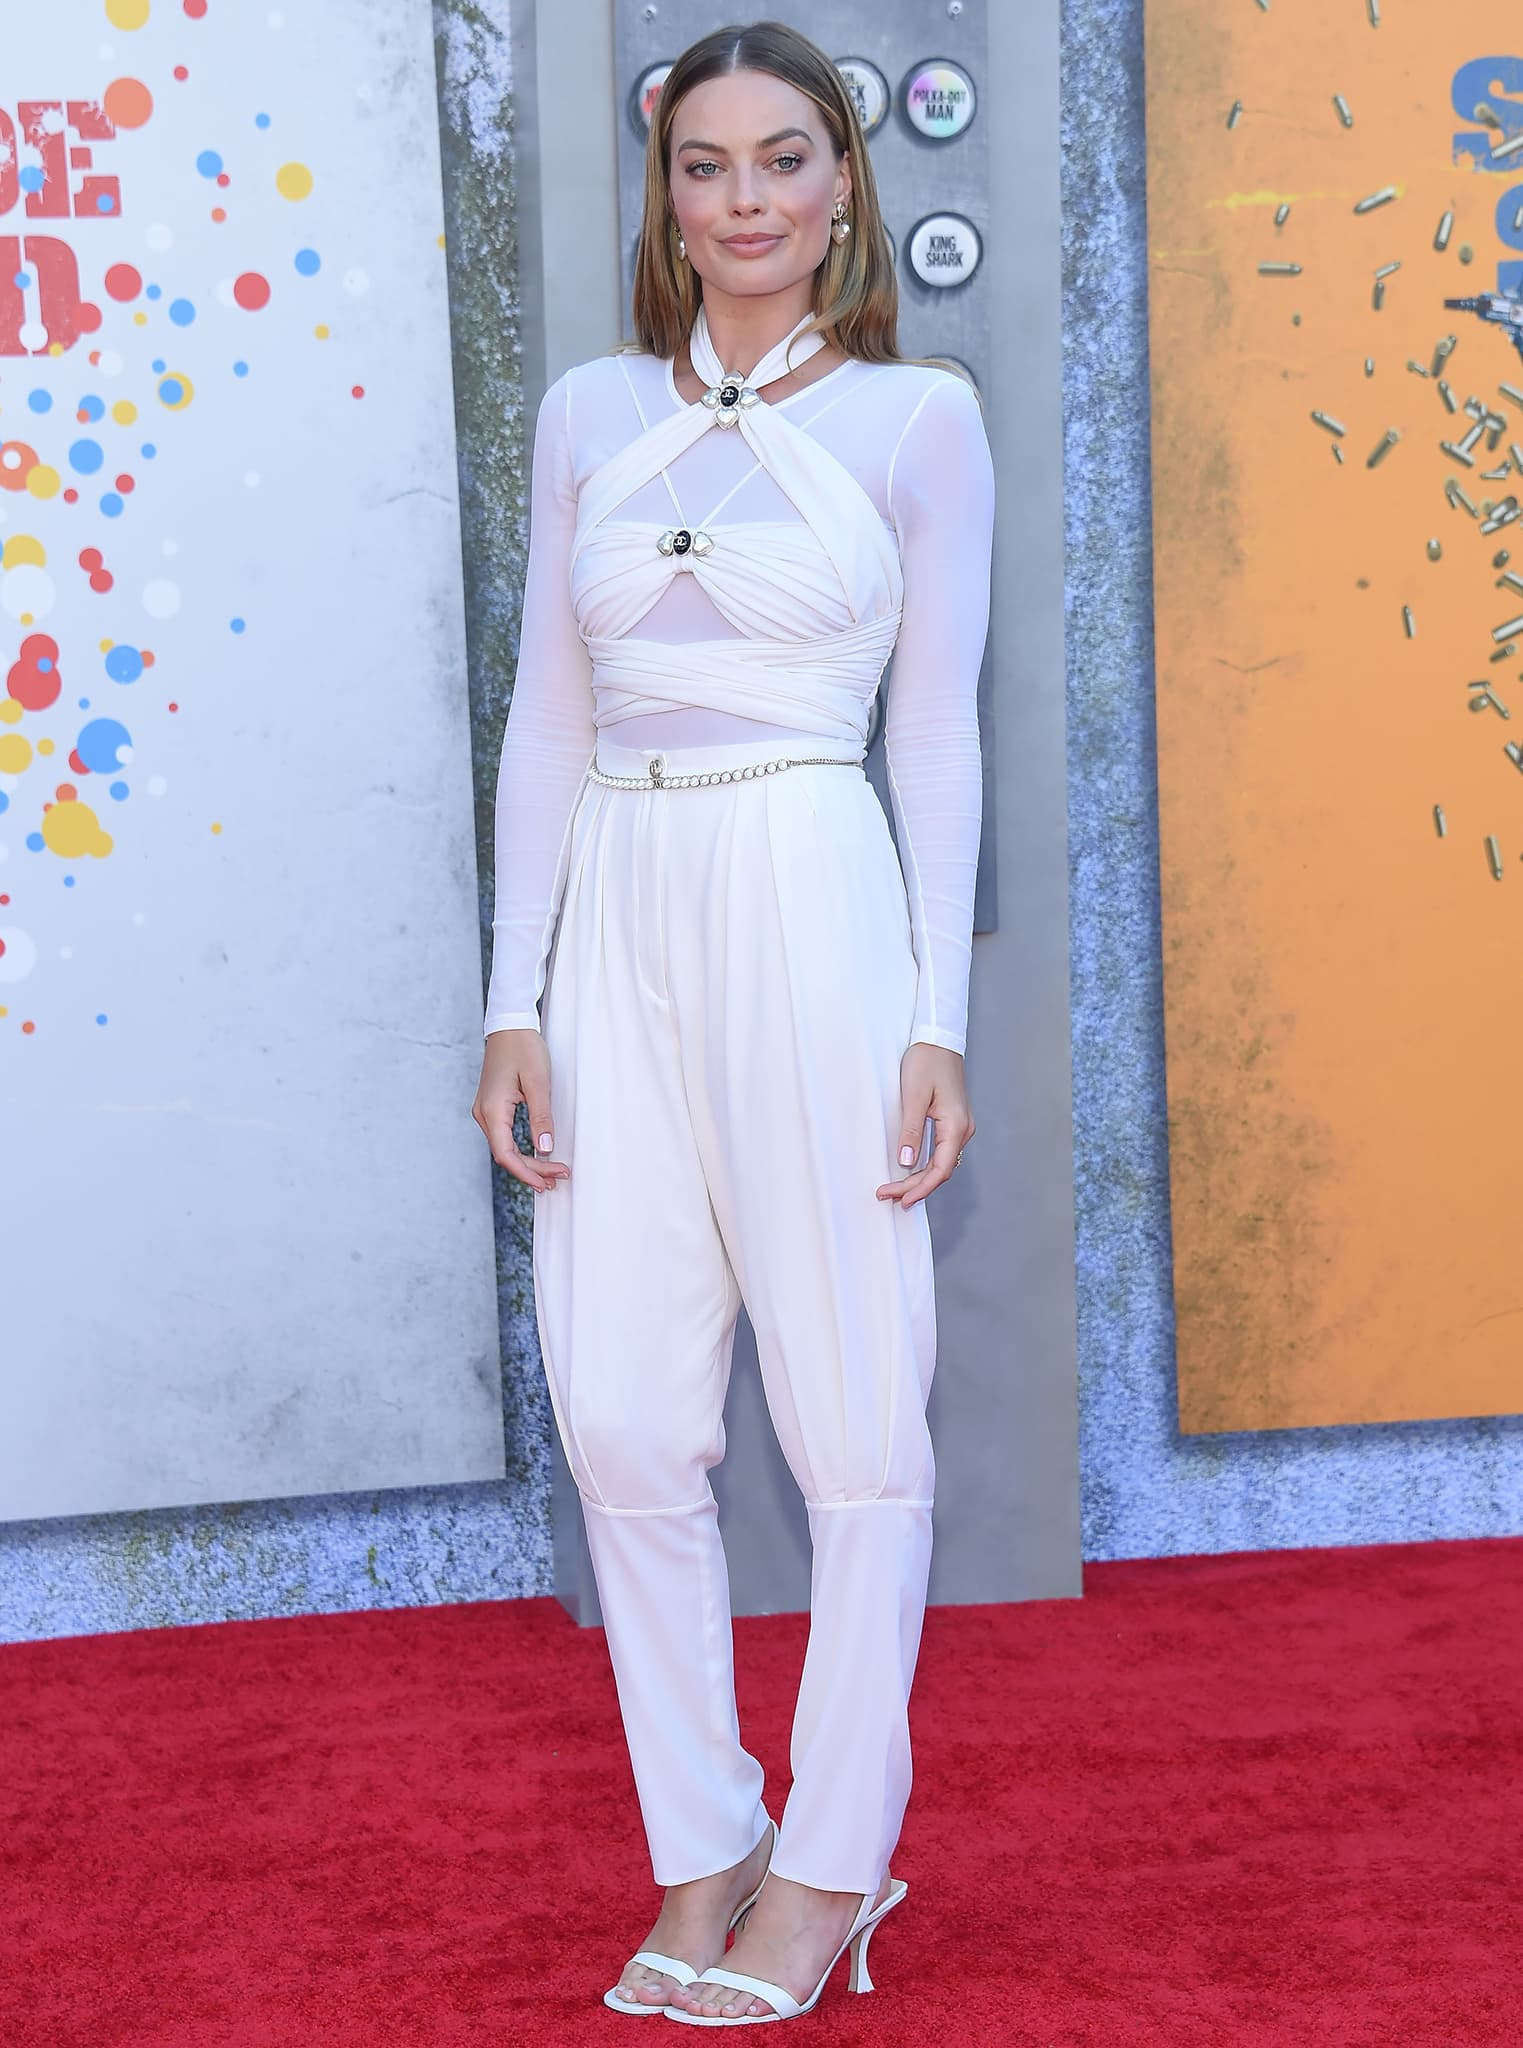 Margot Robbie pairs her white top with Chanel tapered white pants styled with a pearl-embellished chain belt